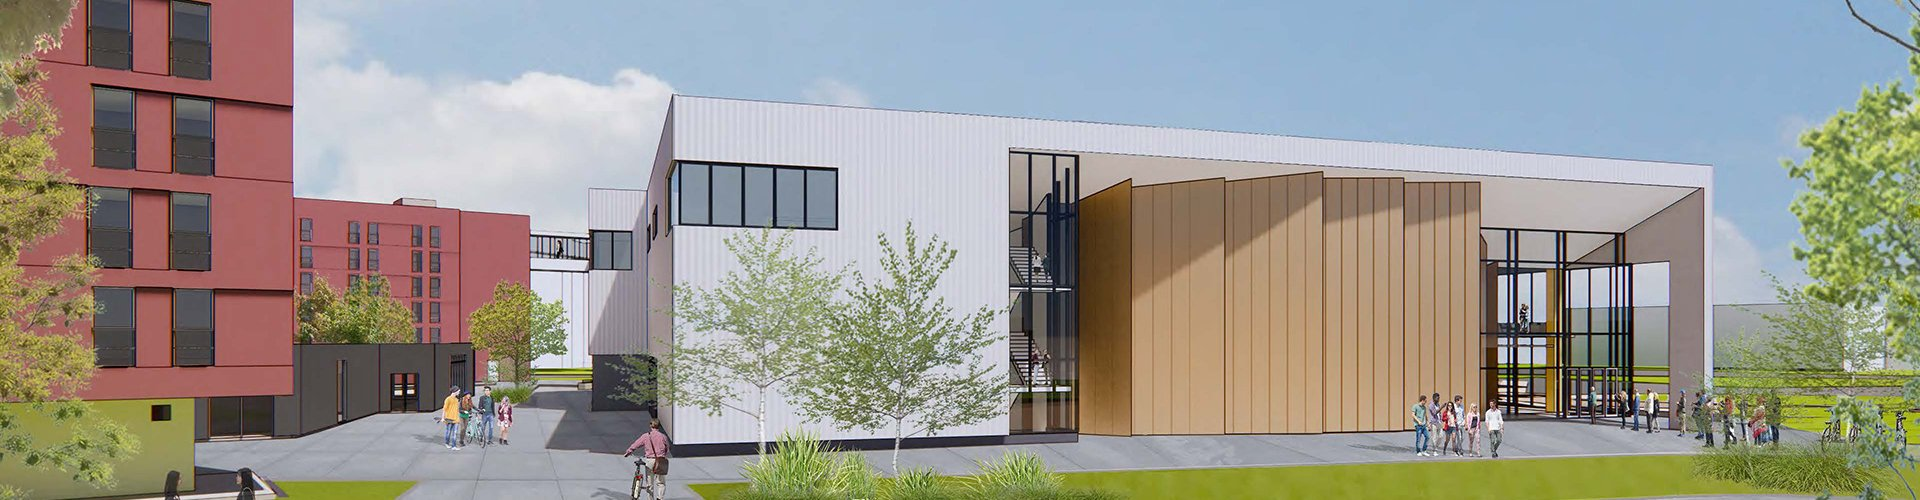 Rendering of the west elevation of the new building